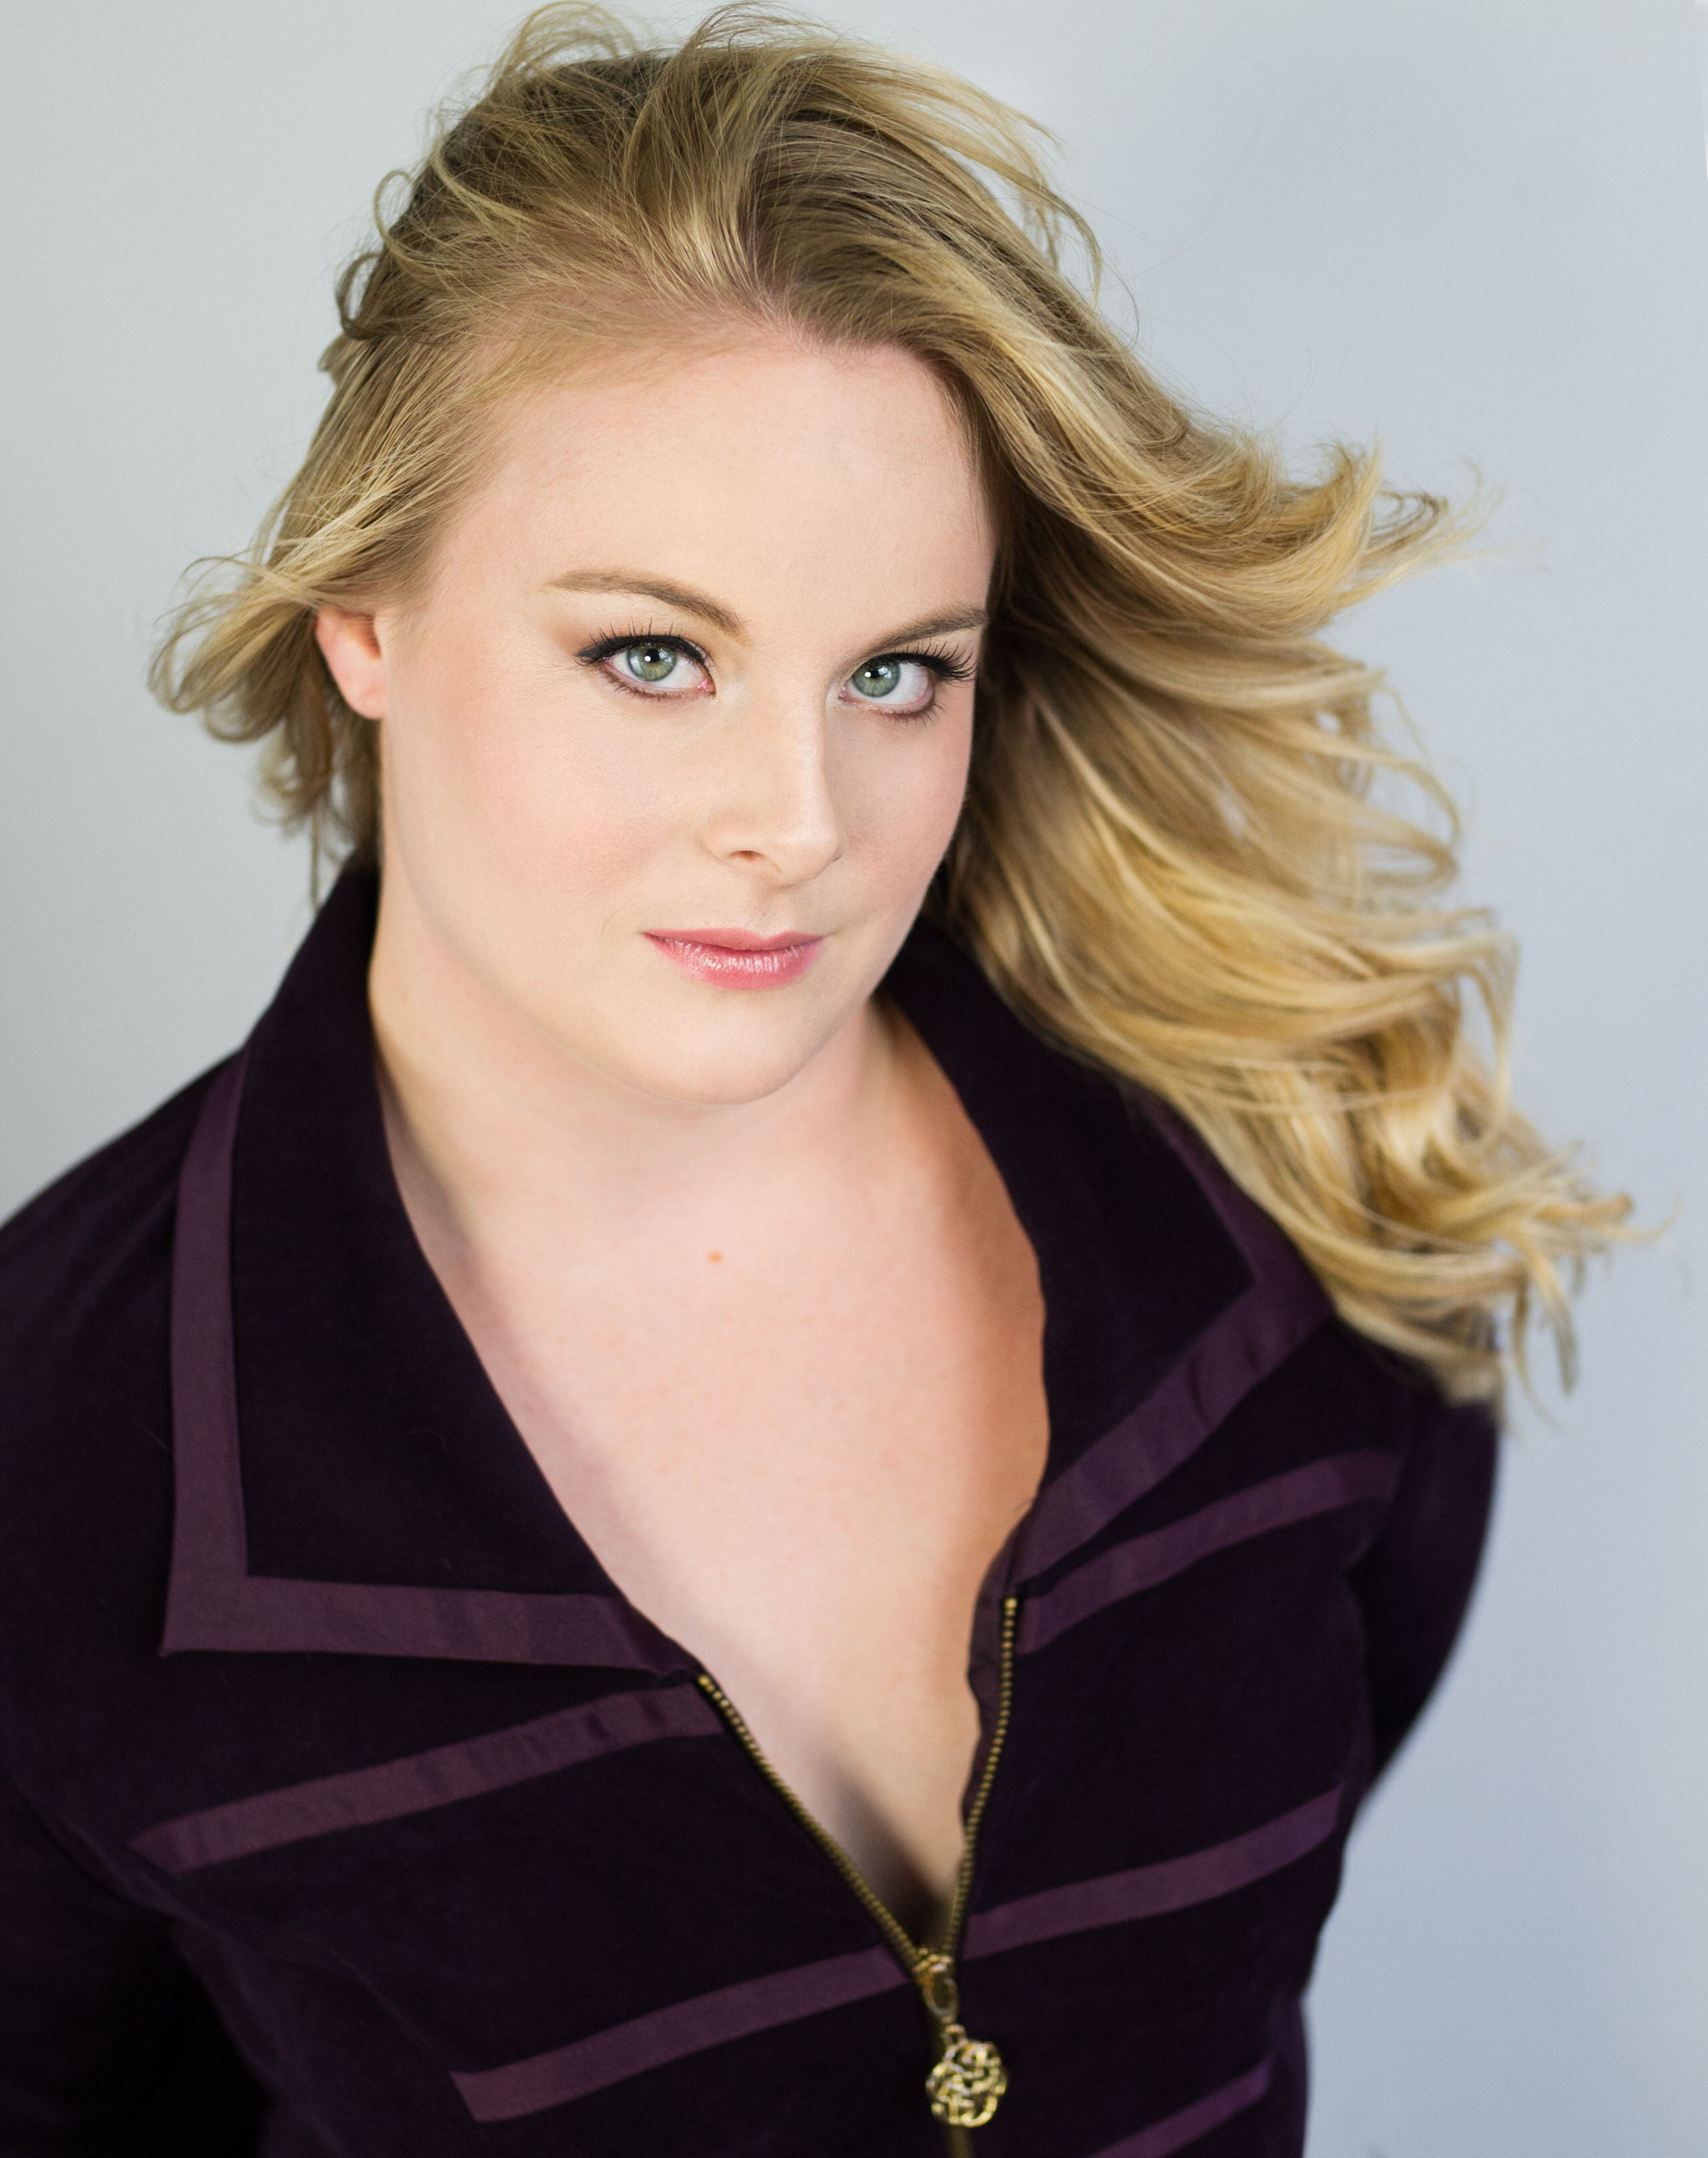 Custom Headshot with hair and makeup. Professional